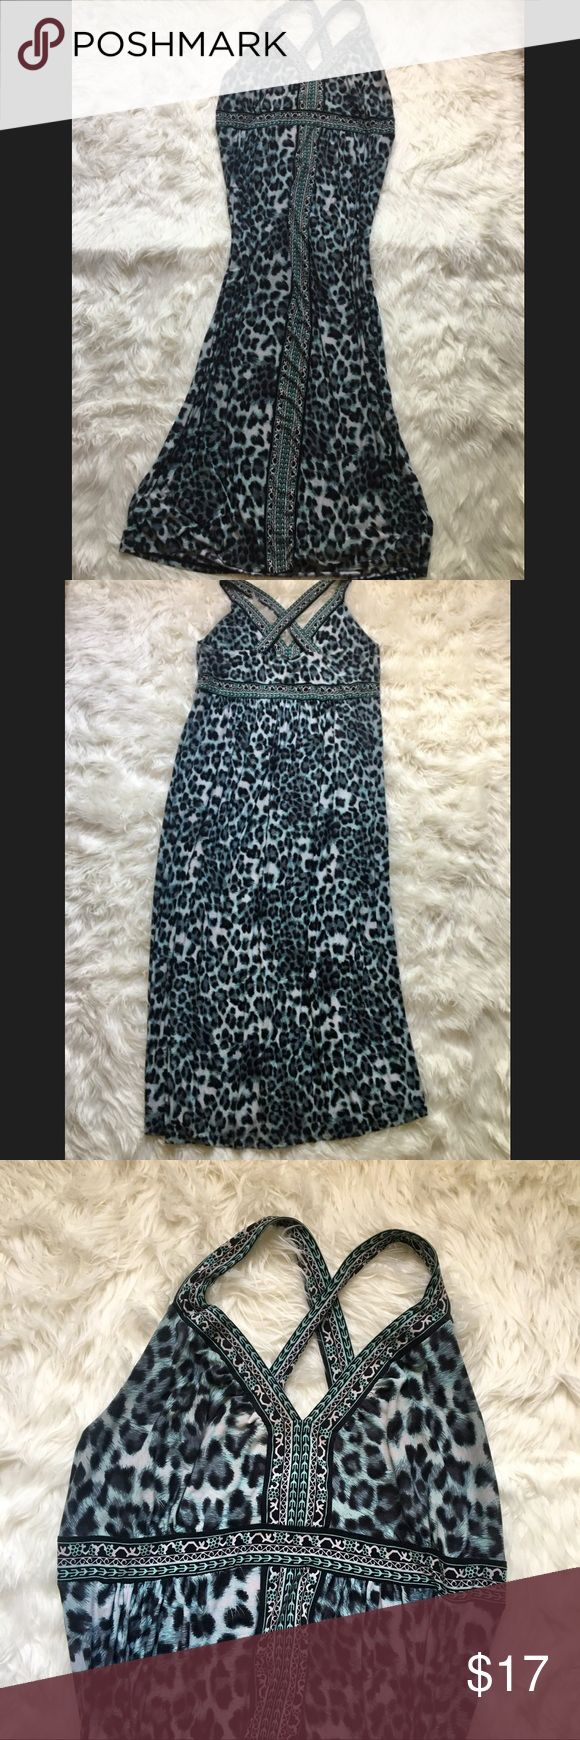 PLUS SIZE ANIMAL PRINT TRIBAL MAXI DRESS TORRID 💠VERY SOFT AND STRETCHY COMFORTABLE MAXI DRESS, WITH CUTE STRAPS! LIKE A TORRID BRAND! SIZE 2X. GENTLY USED! MAKE A BUNDLE WITH OTHER ITEMS TO SAVE BIG! MAKE OFFERS! CHECK OUT MY OTHER PLUS SIZE LISTINGS torrid Dresses Maxi